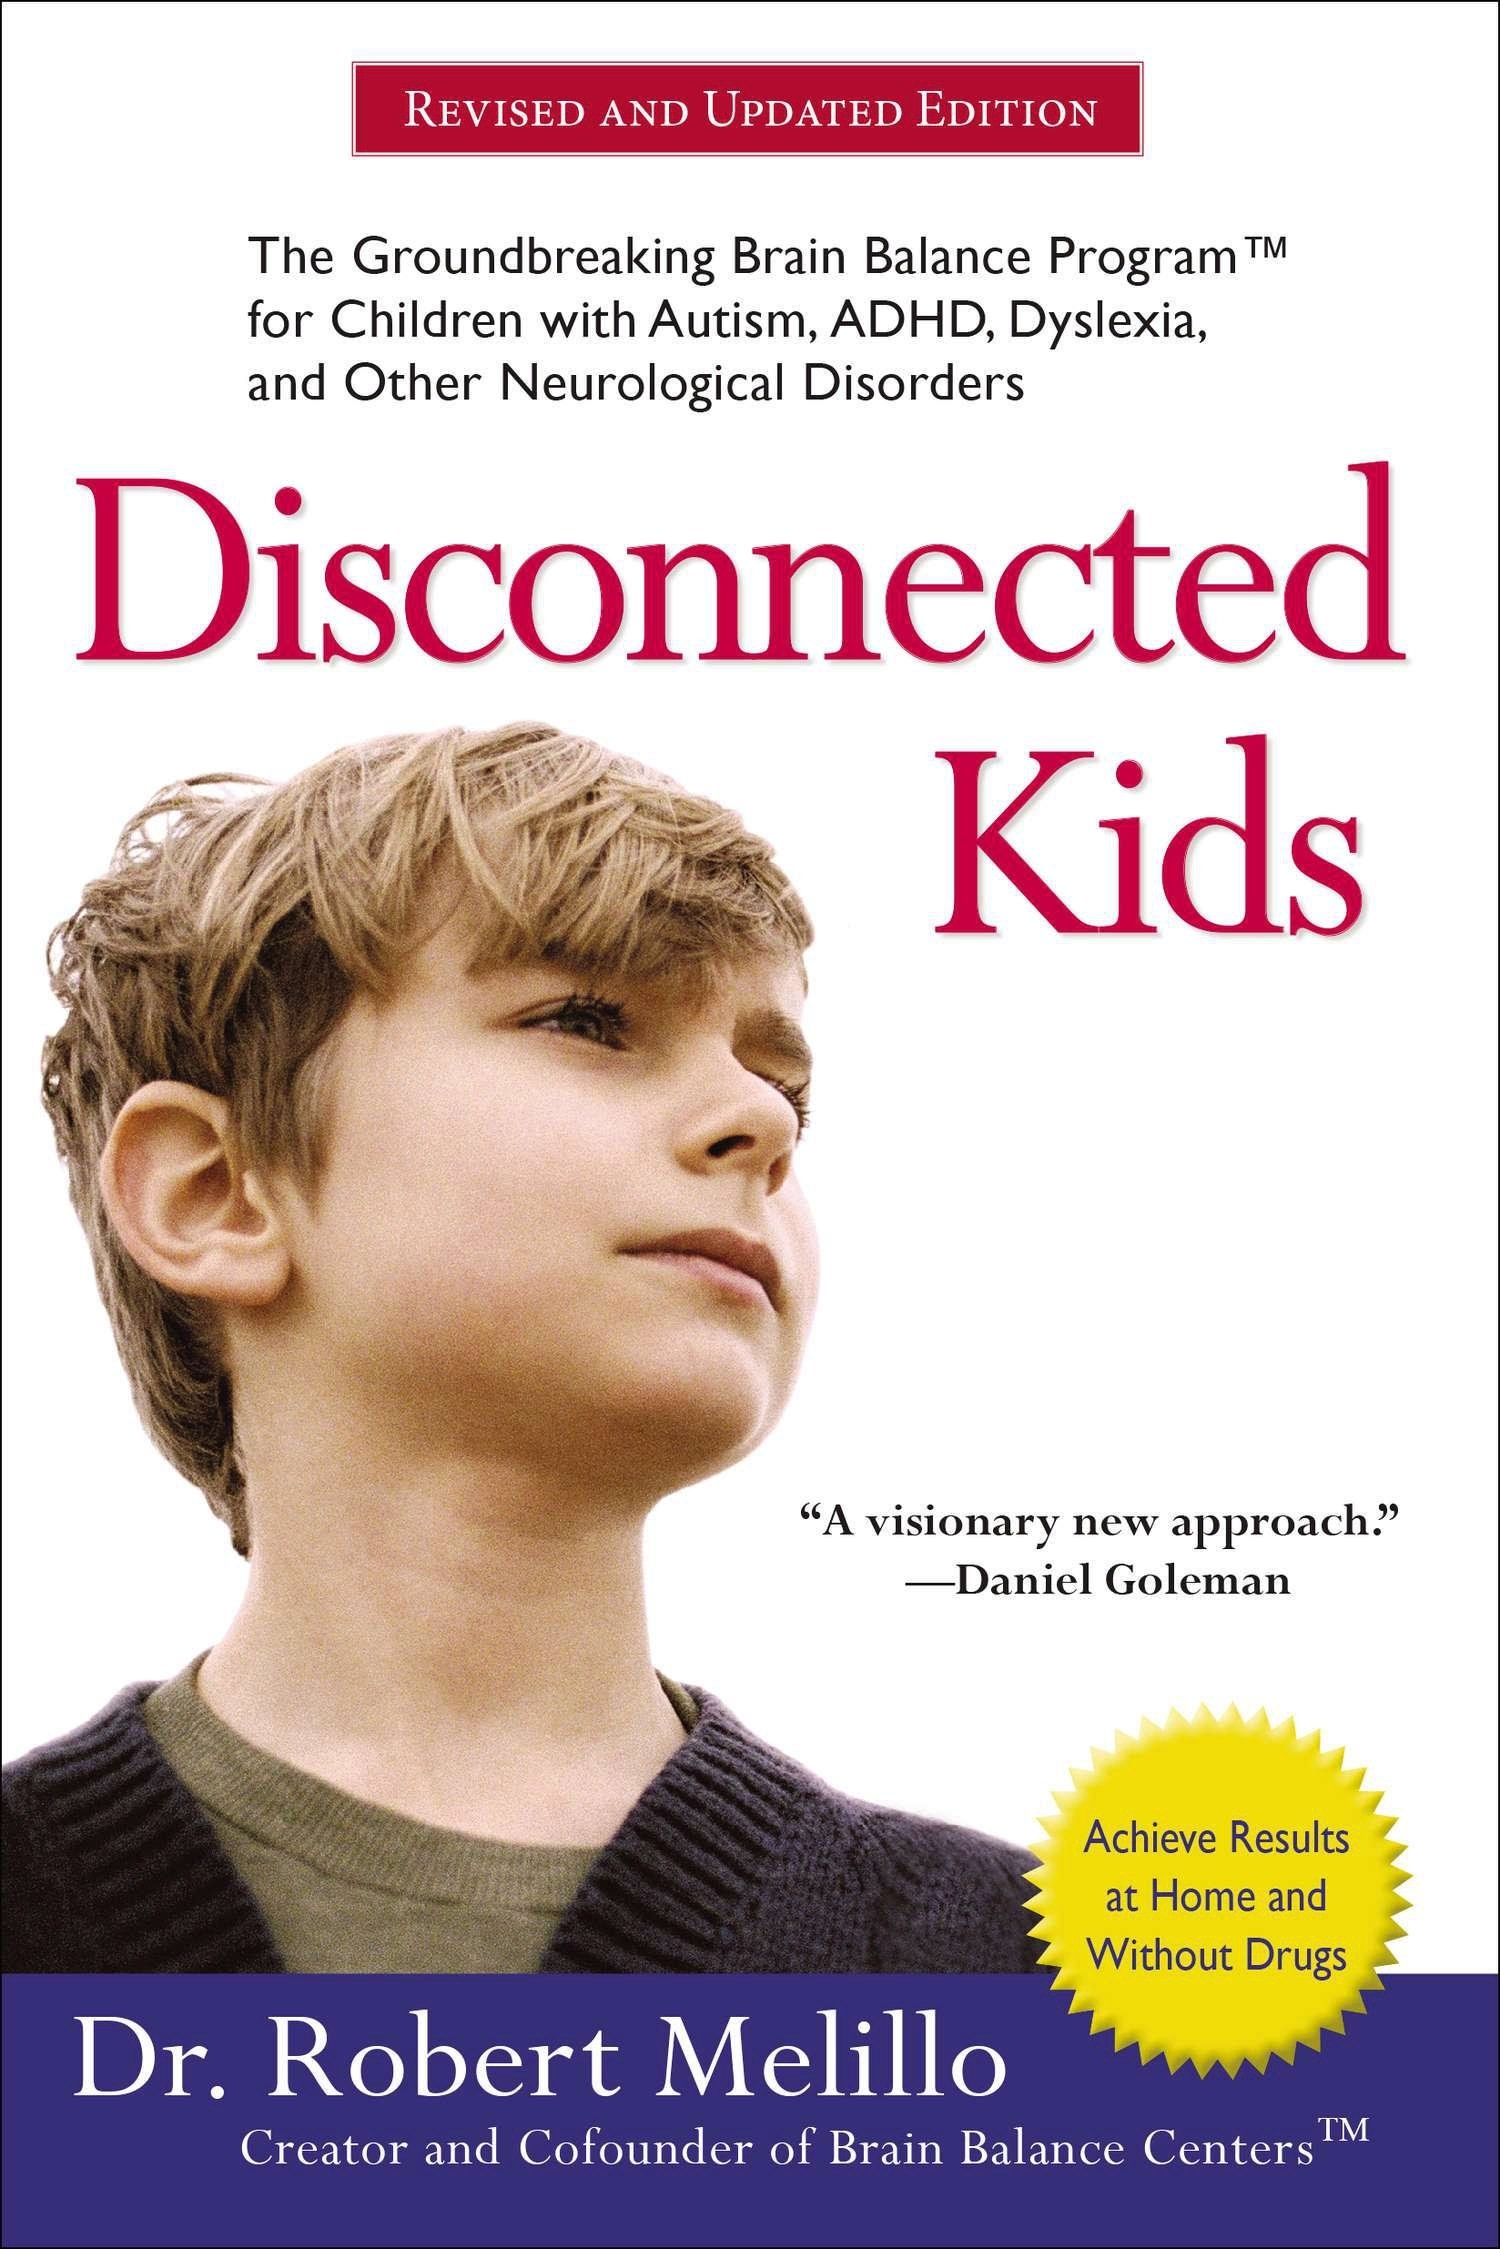 Disconnected Kids The Groundbreaking Brain Balance Program for